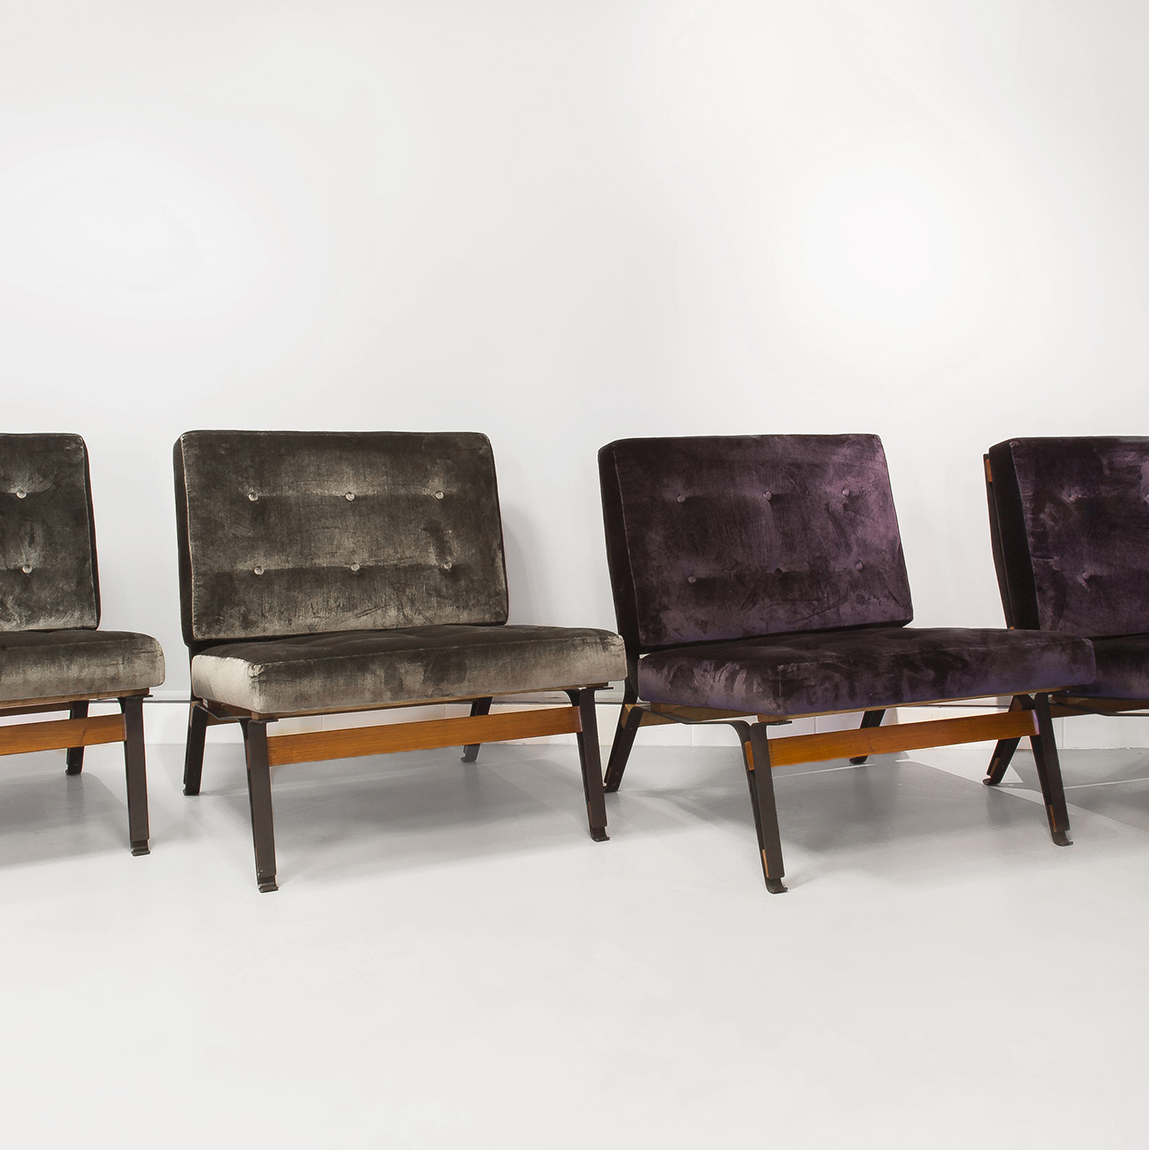 Ico Parisi  |                                  Chairs, model 856